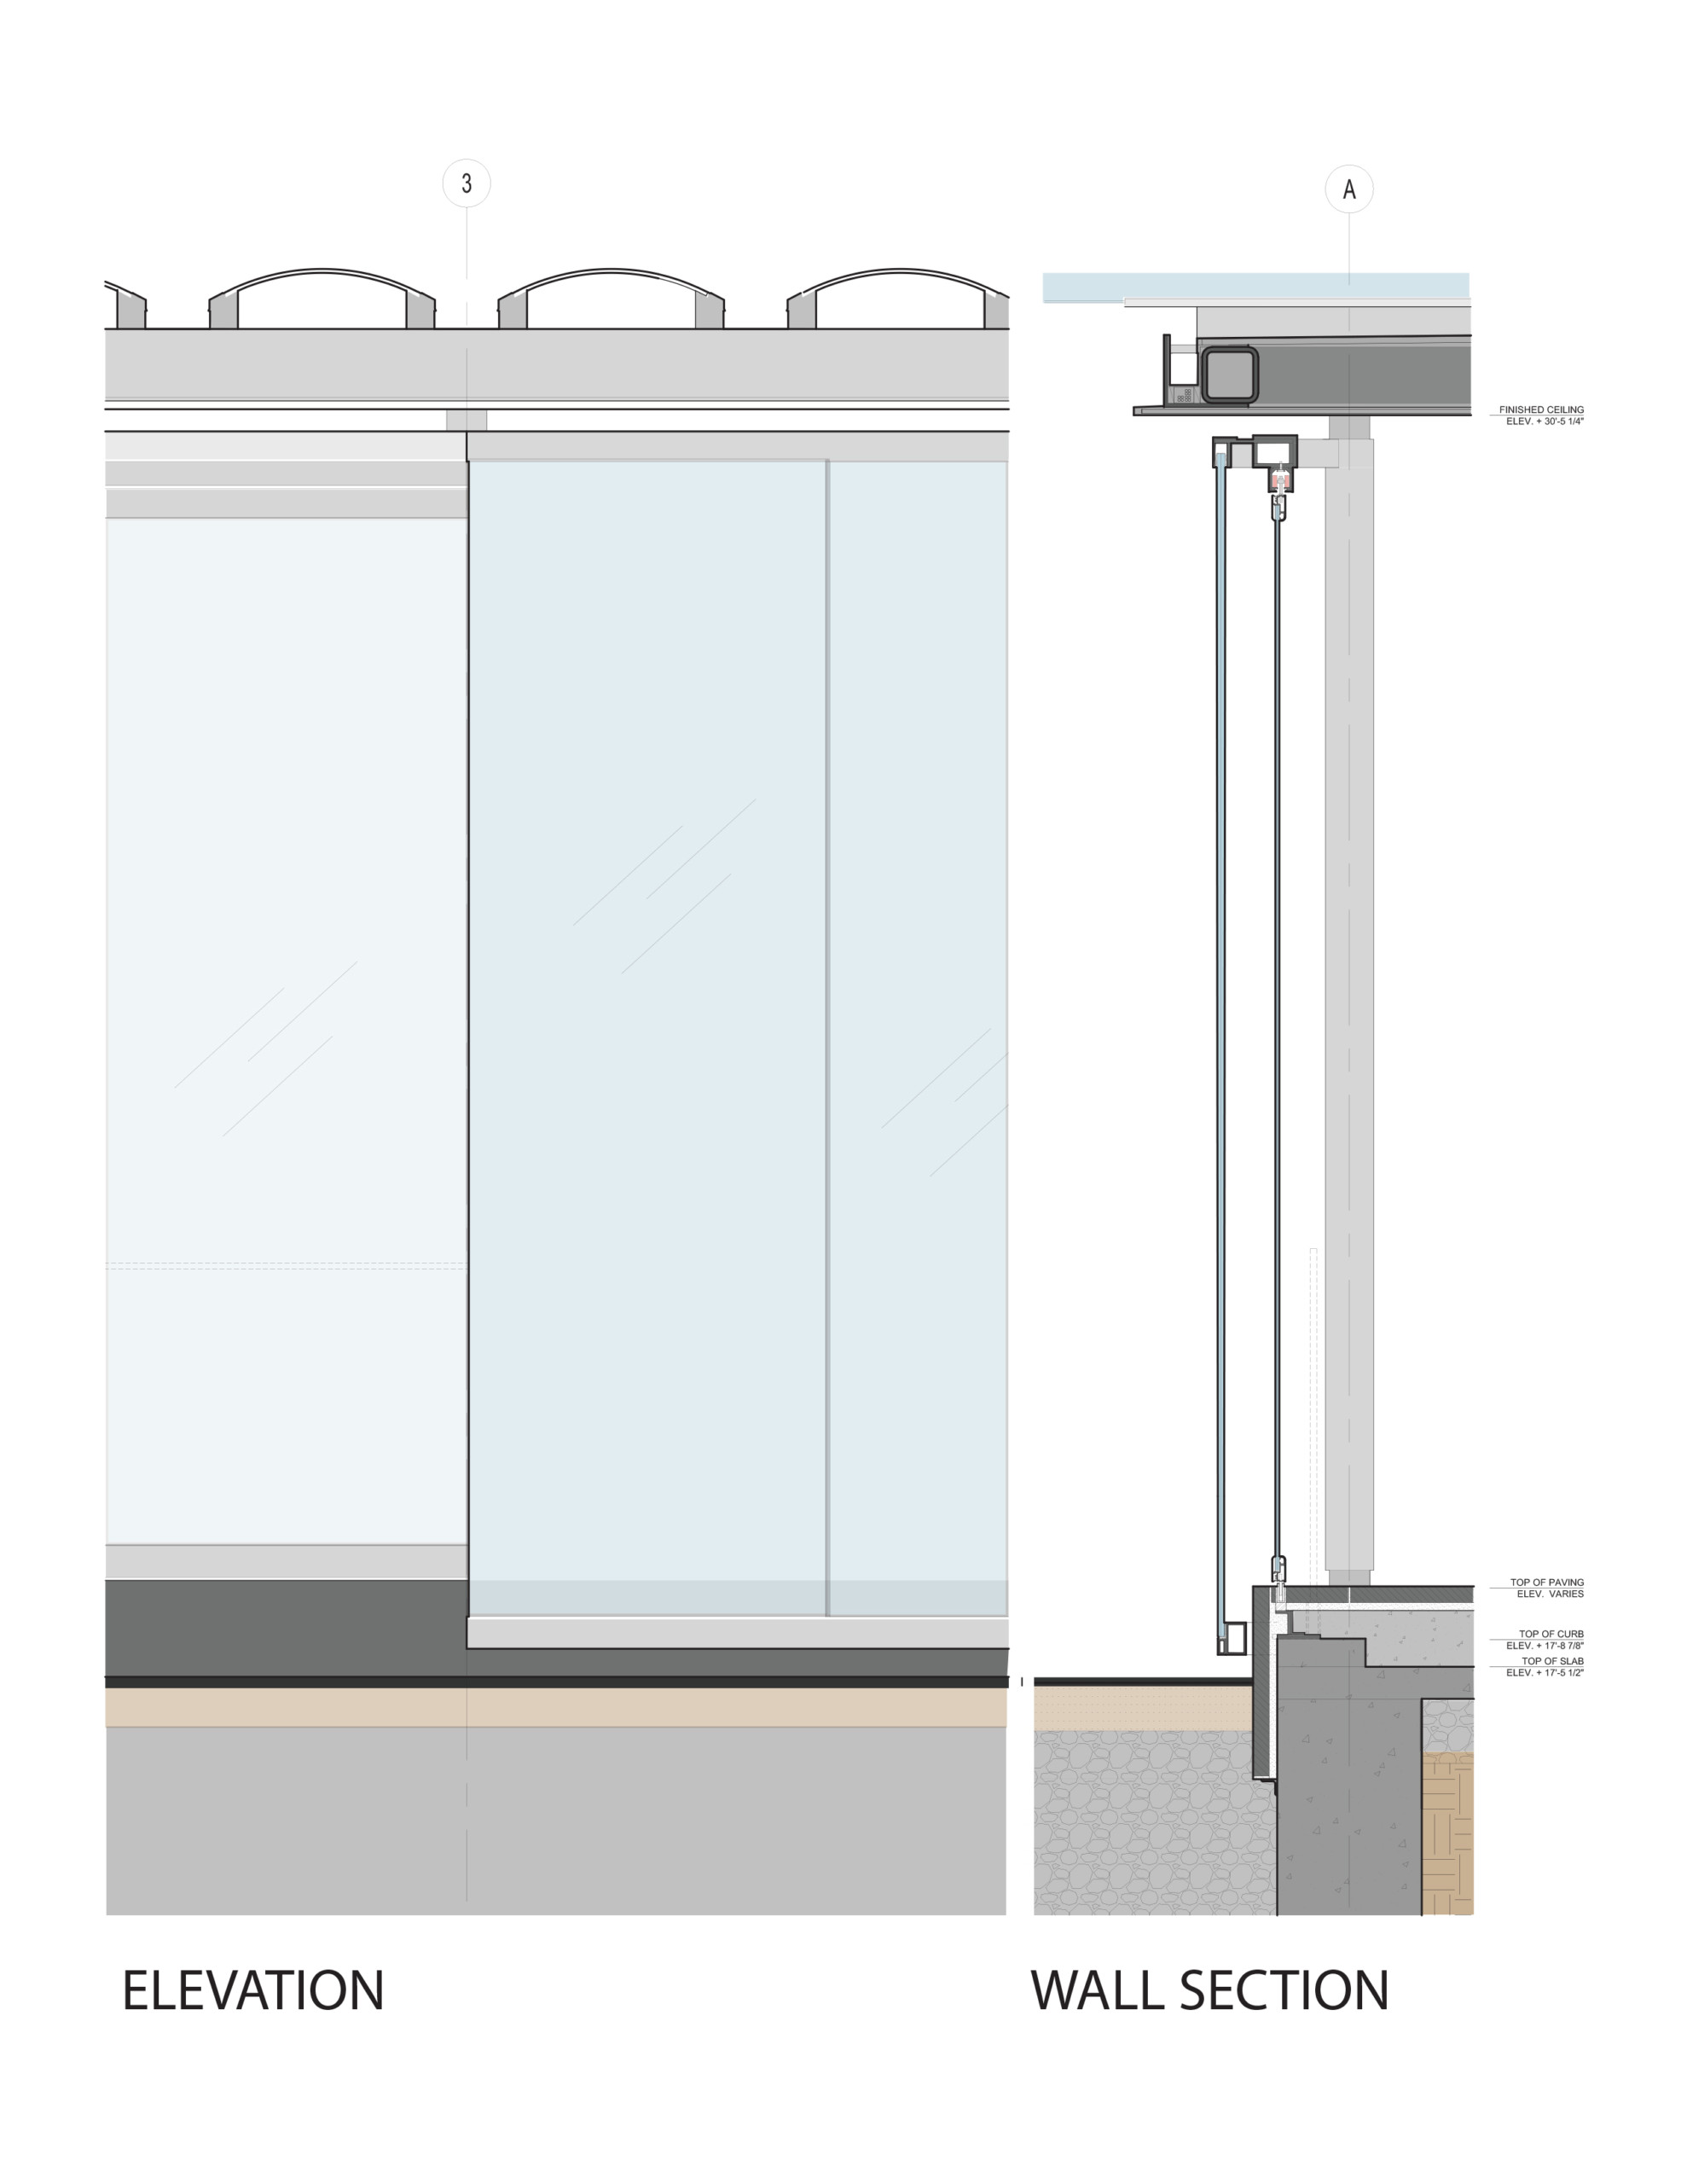 A detailed elevation and section of the pavillion's oversize glass doors.